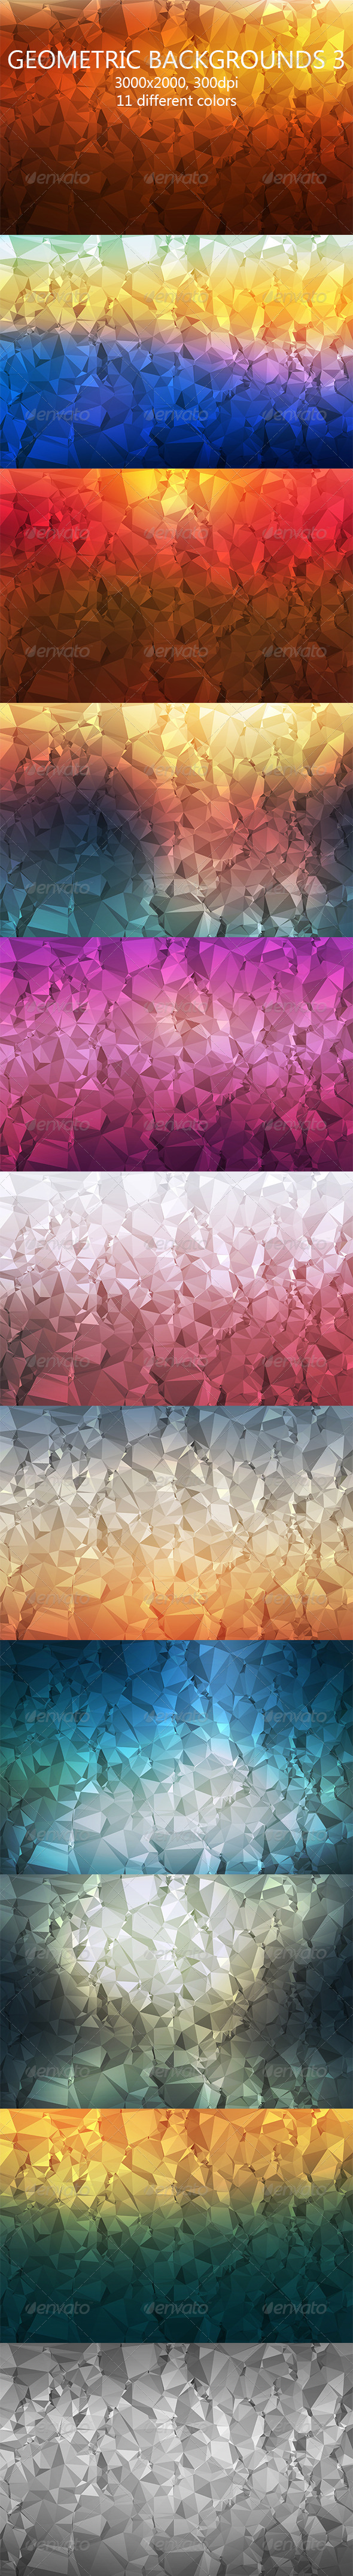 Geometric Backgrounds 3